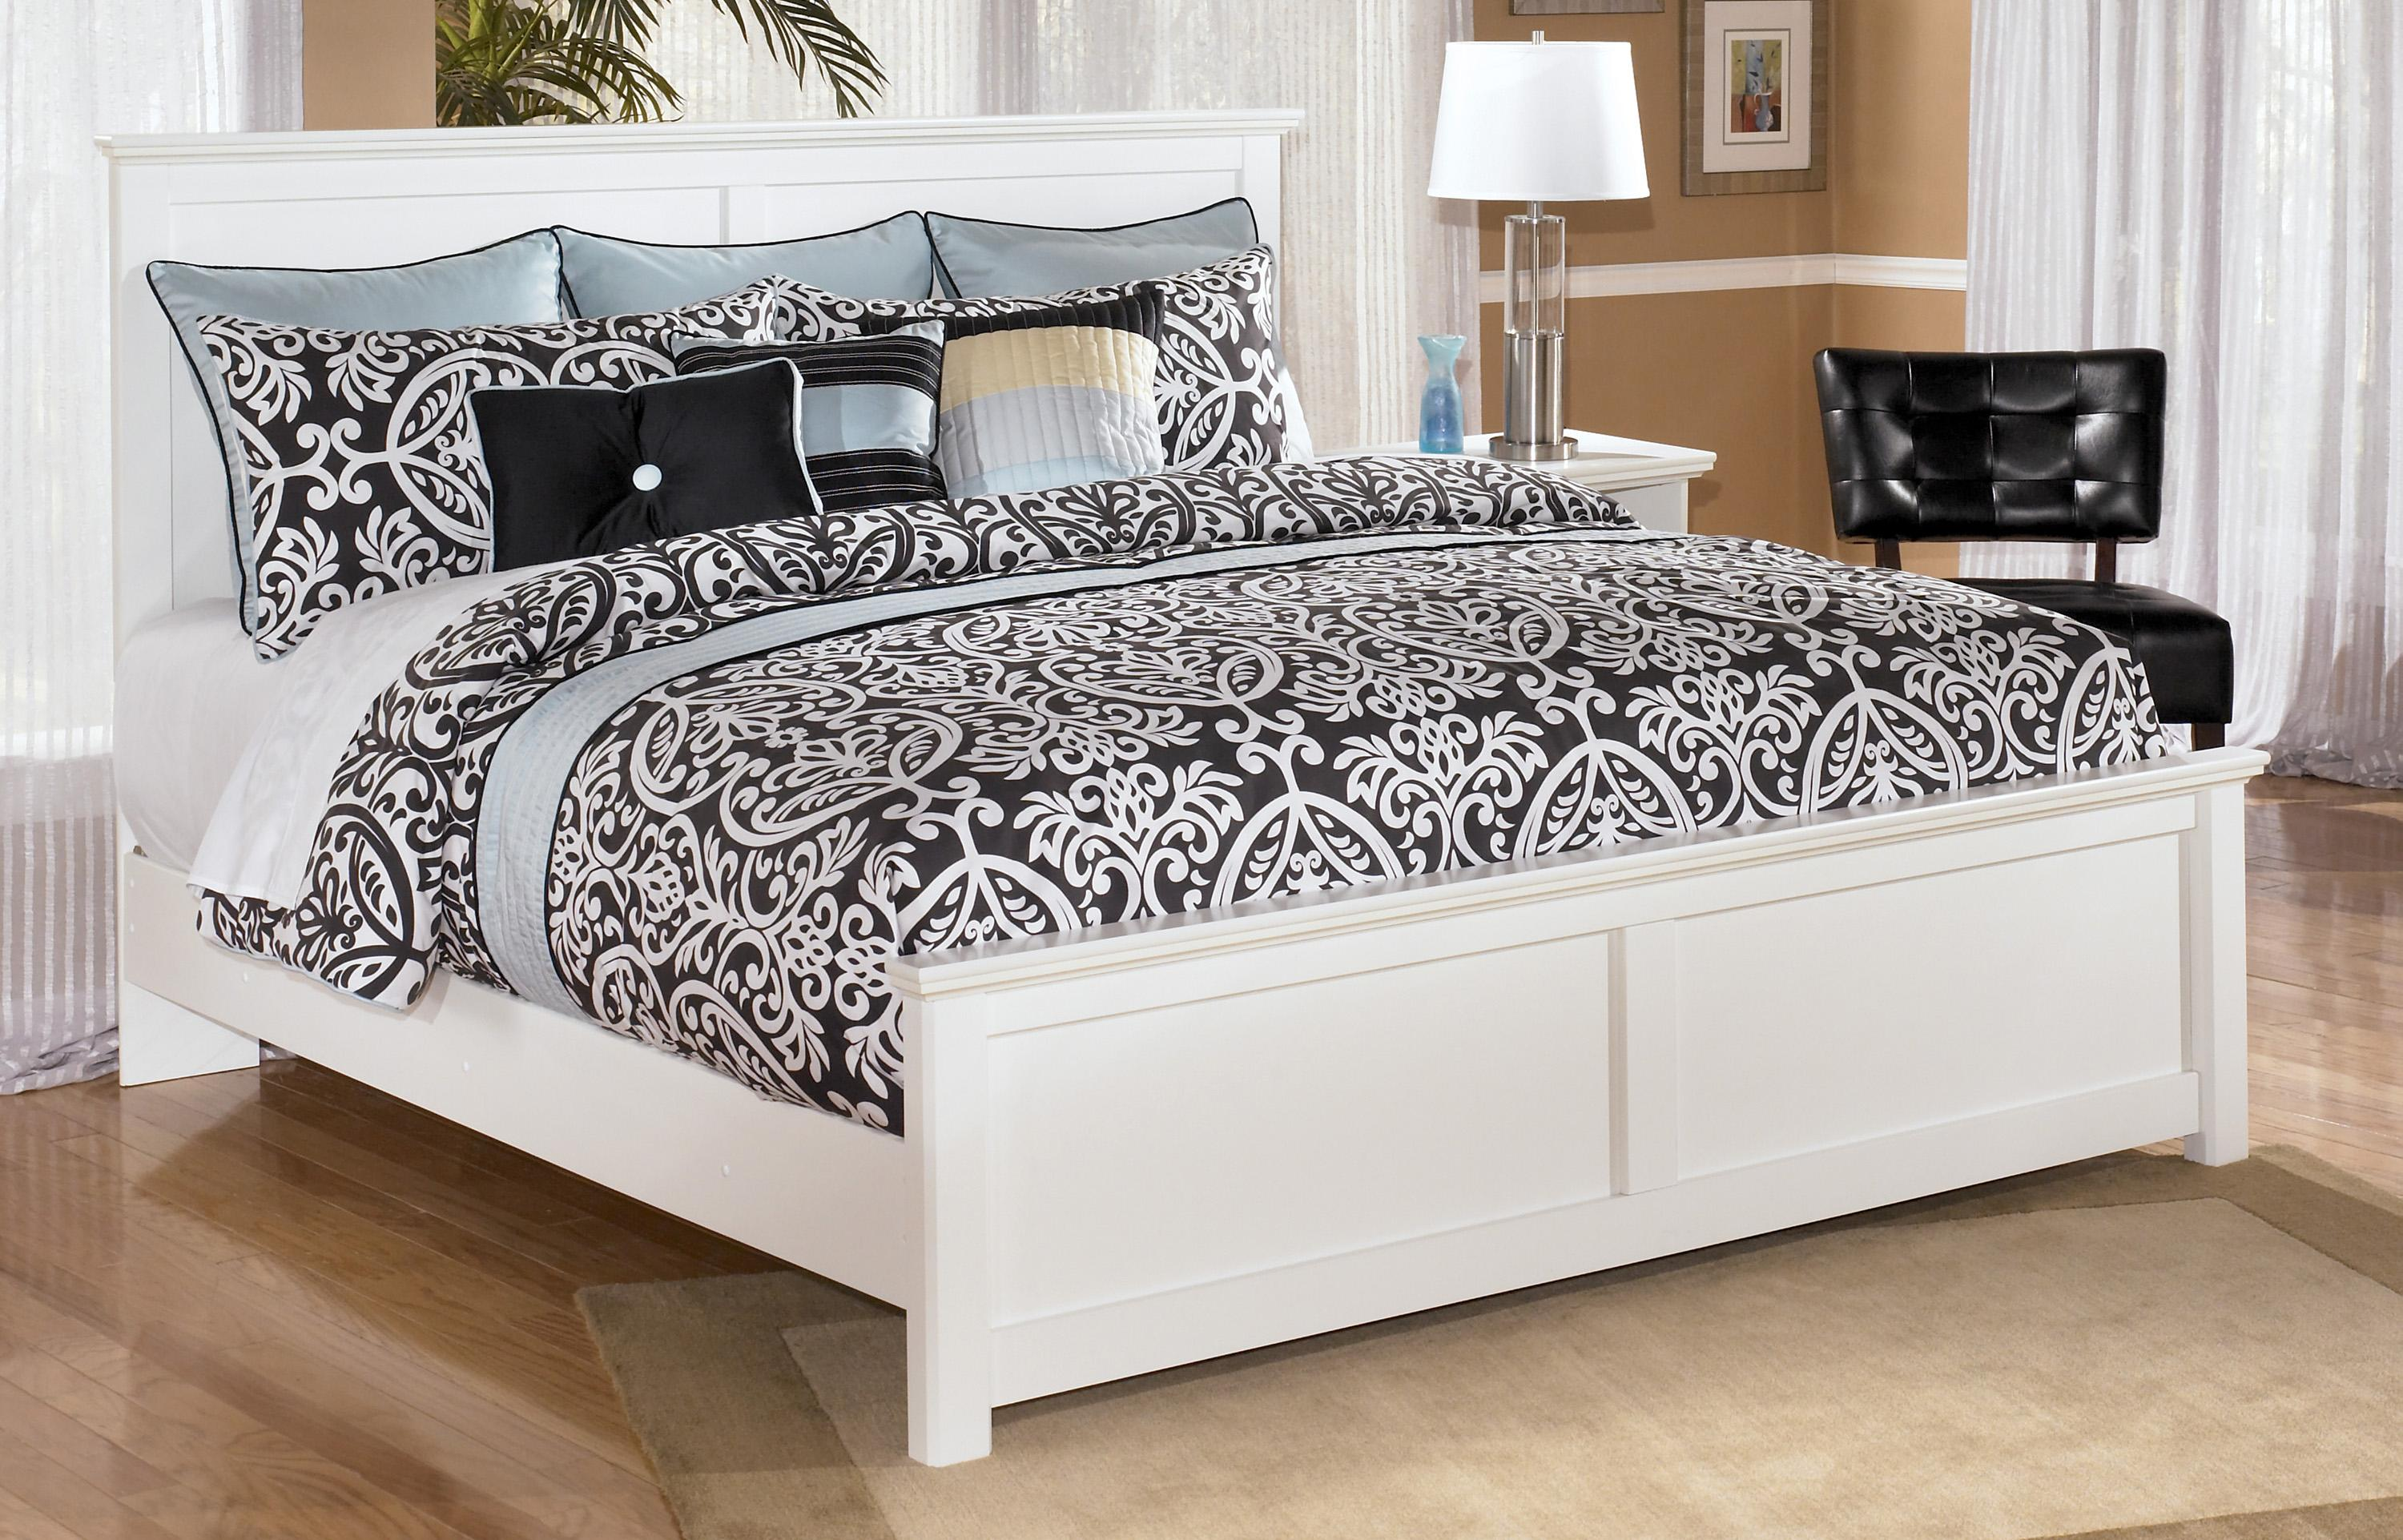 Signature Design by Ashley Bostwick Shoals King Panel Bed - Item Number: B139-58+56